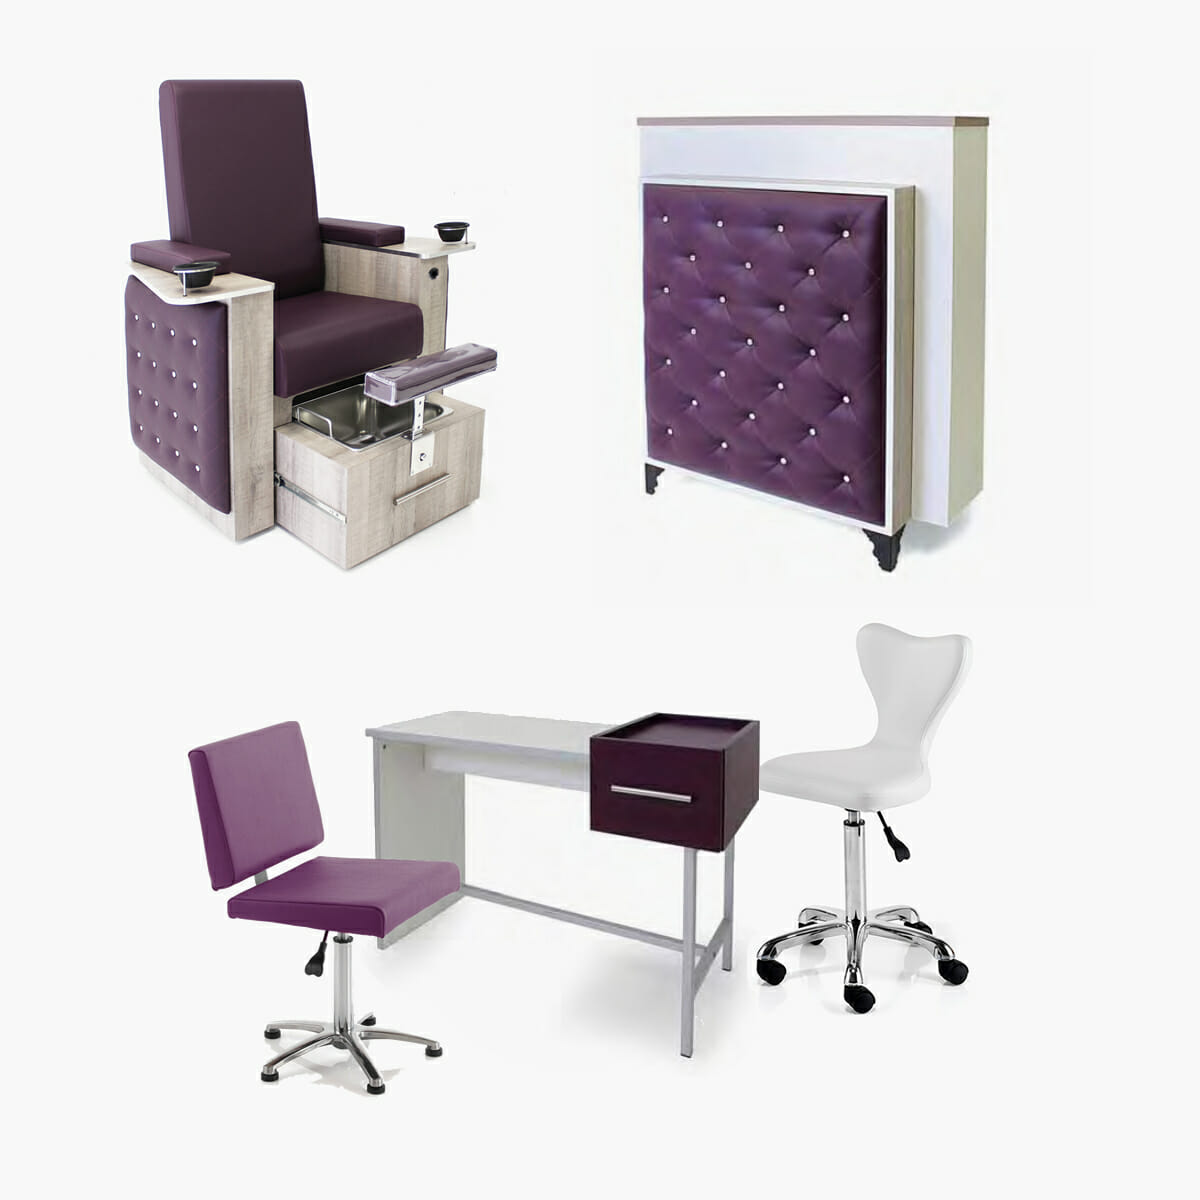 Rem bliss beauty furniture package direct salon furniture for Design x salon furniture